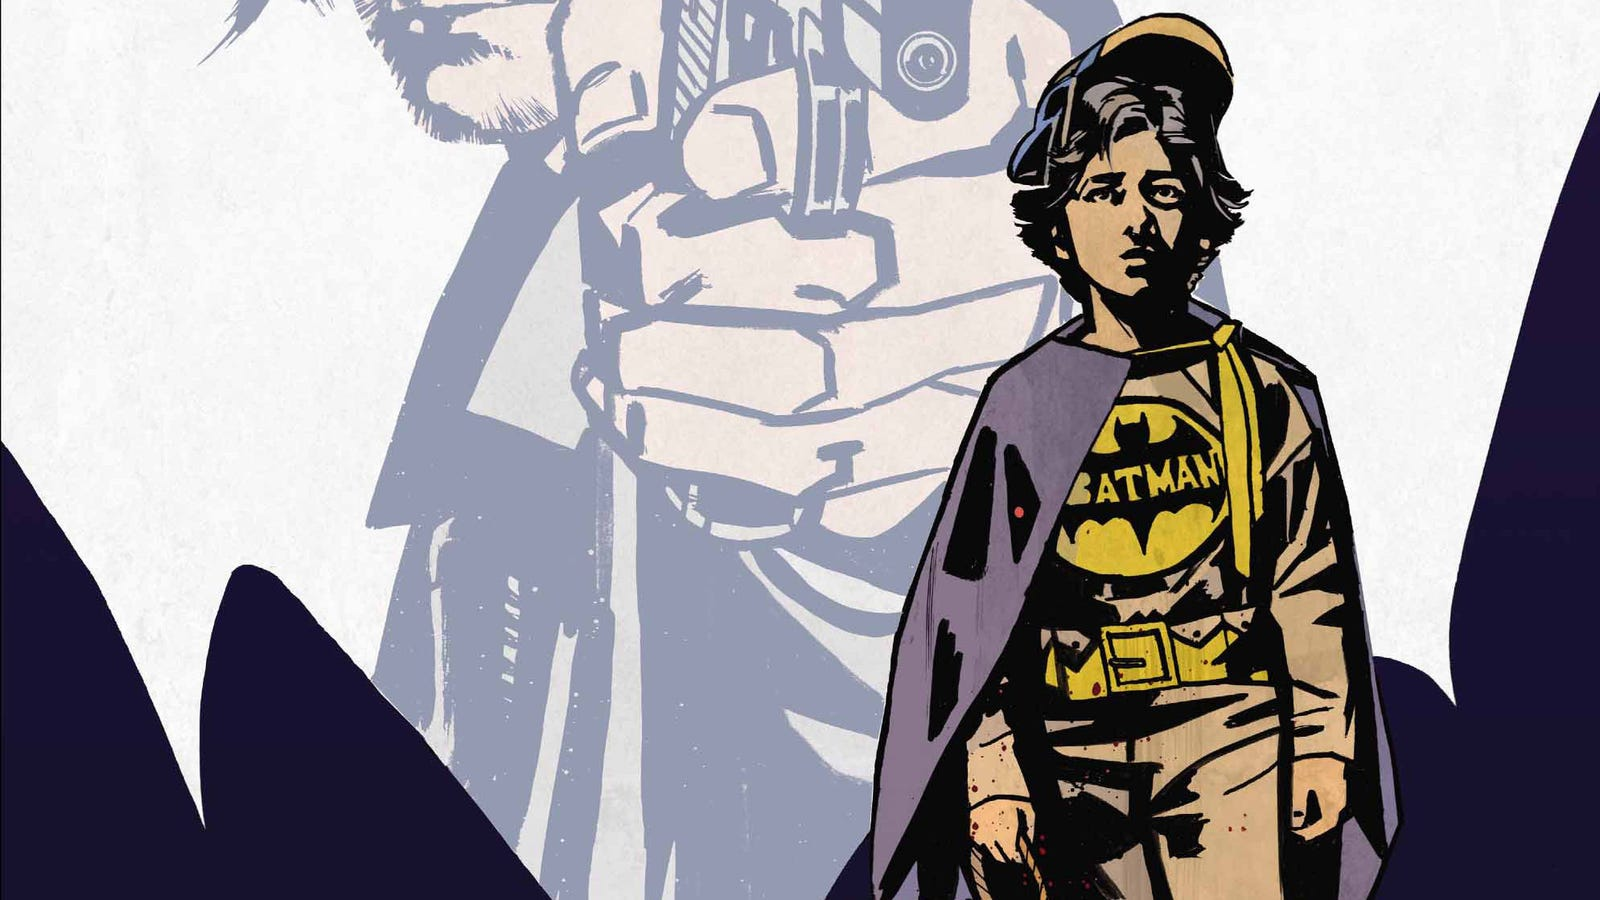 This Creature Of The Night #1 exclusive deepens Batman's childhood trauma